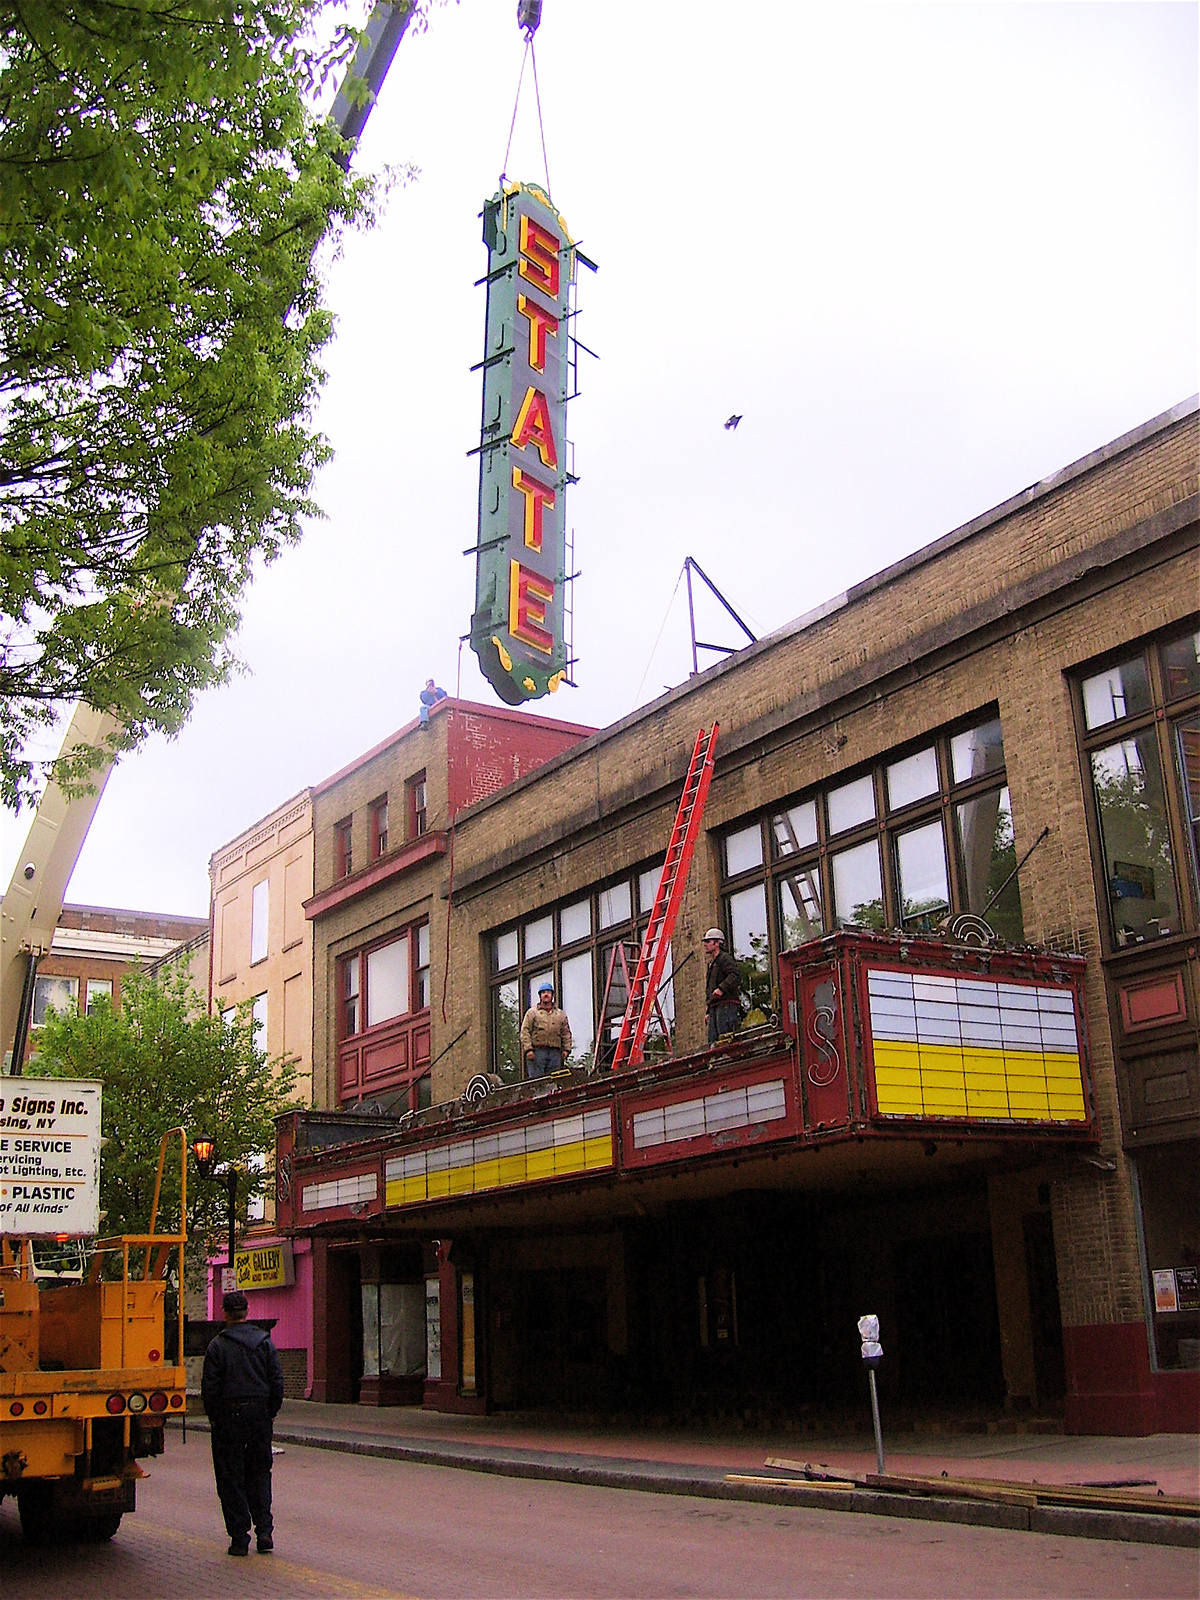 The State Theatre was built in 1928.